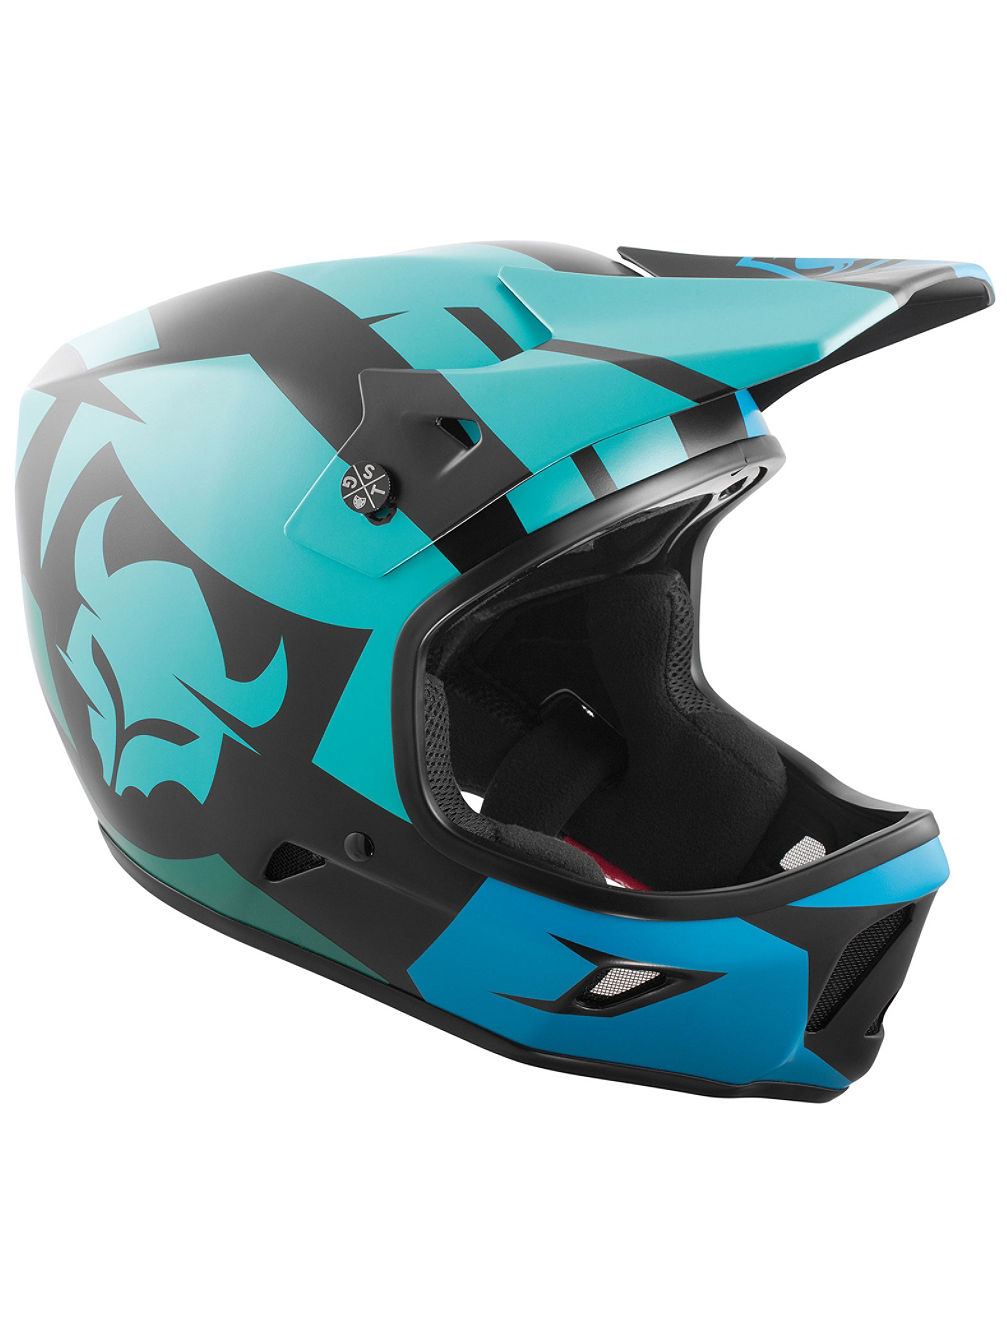 Advance Graphic Design Fullface Helmet